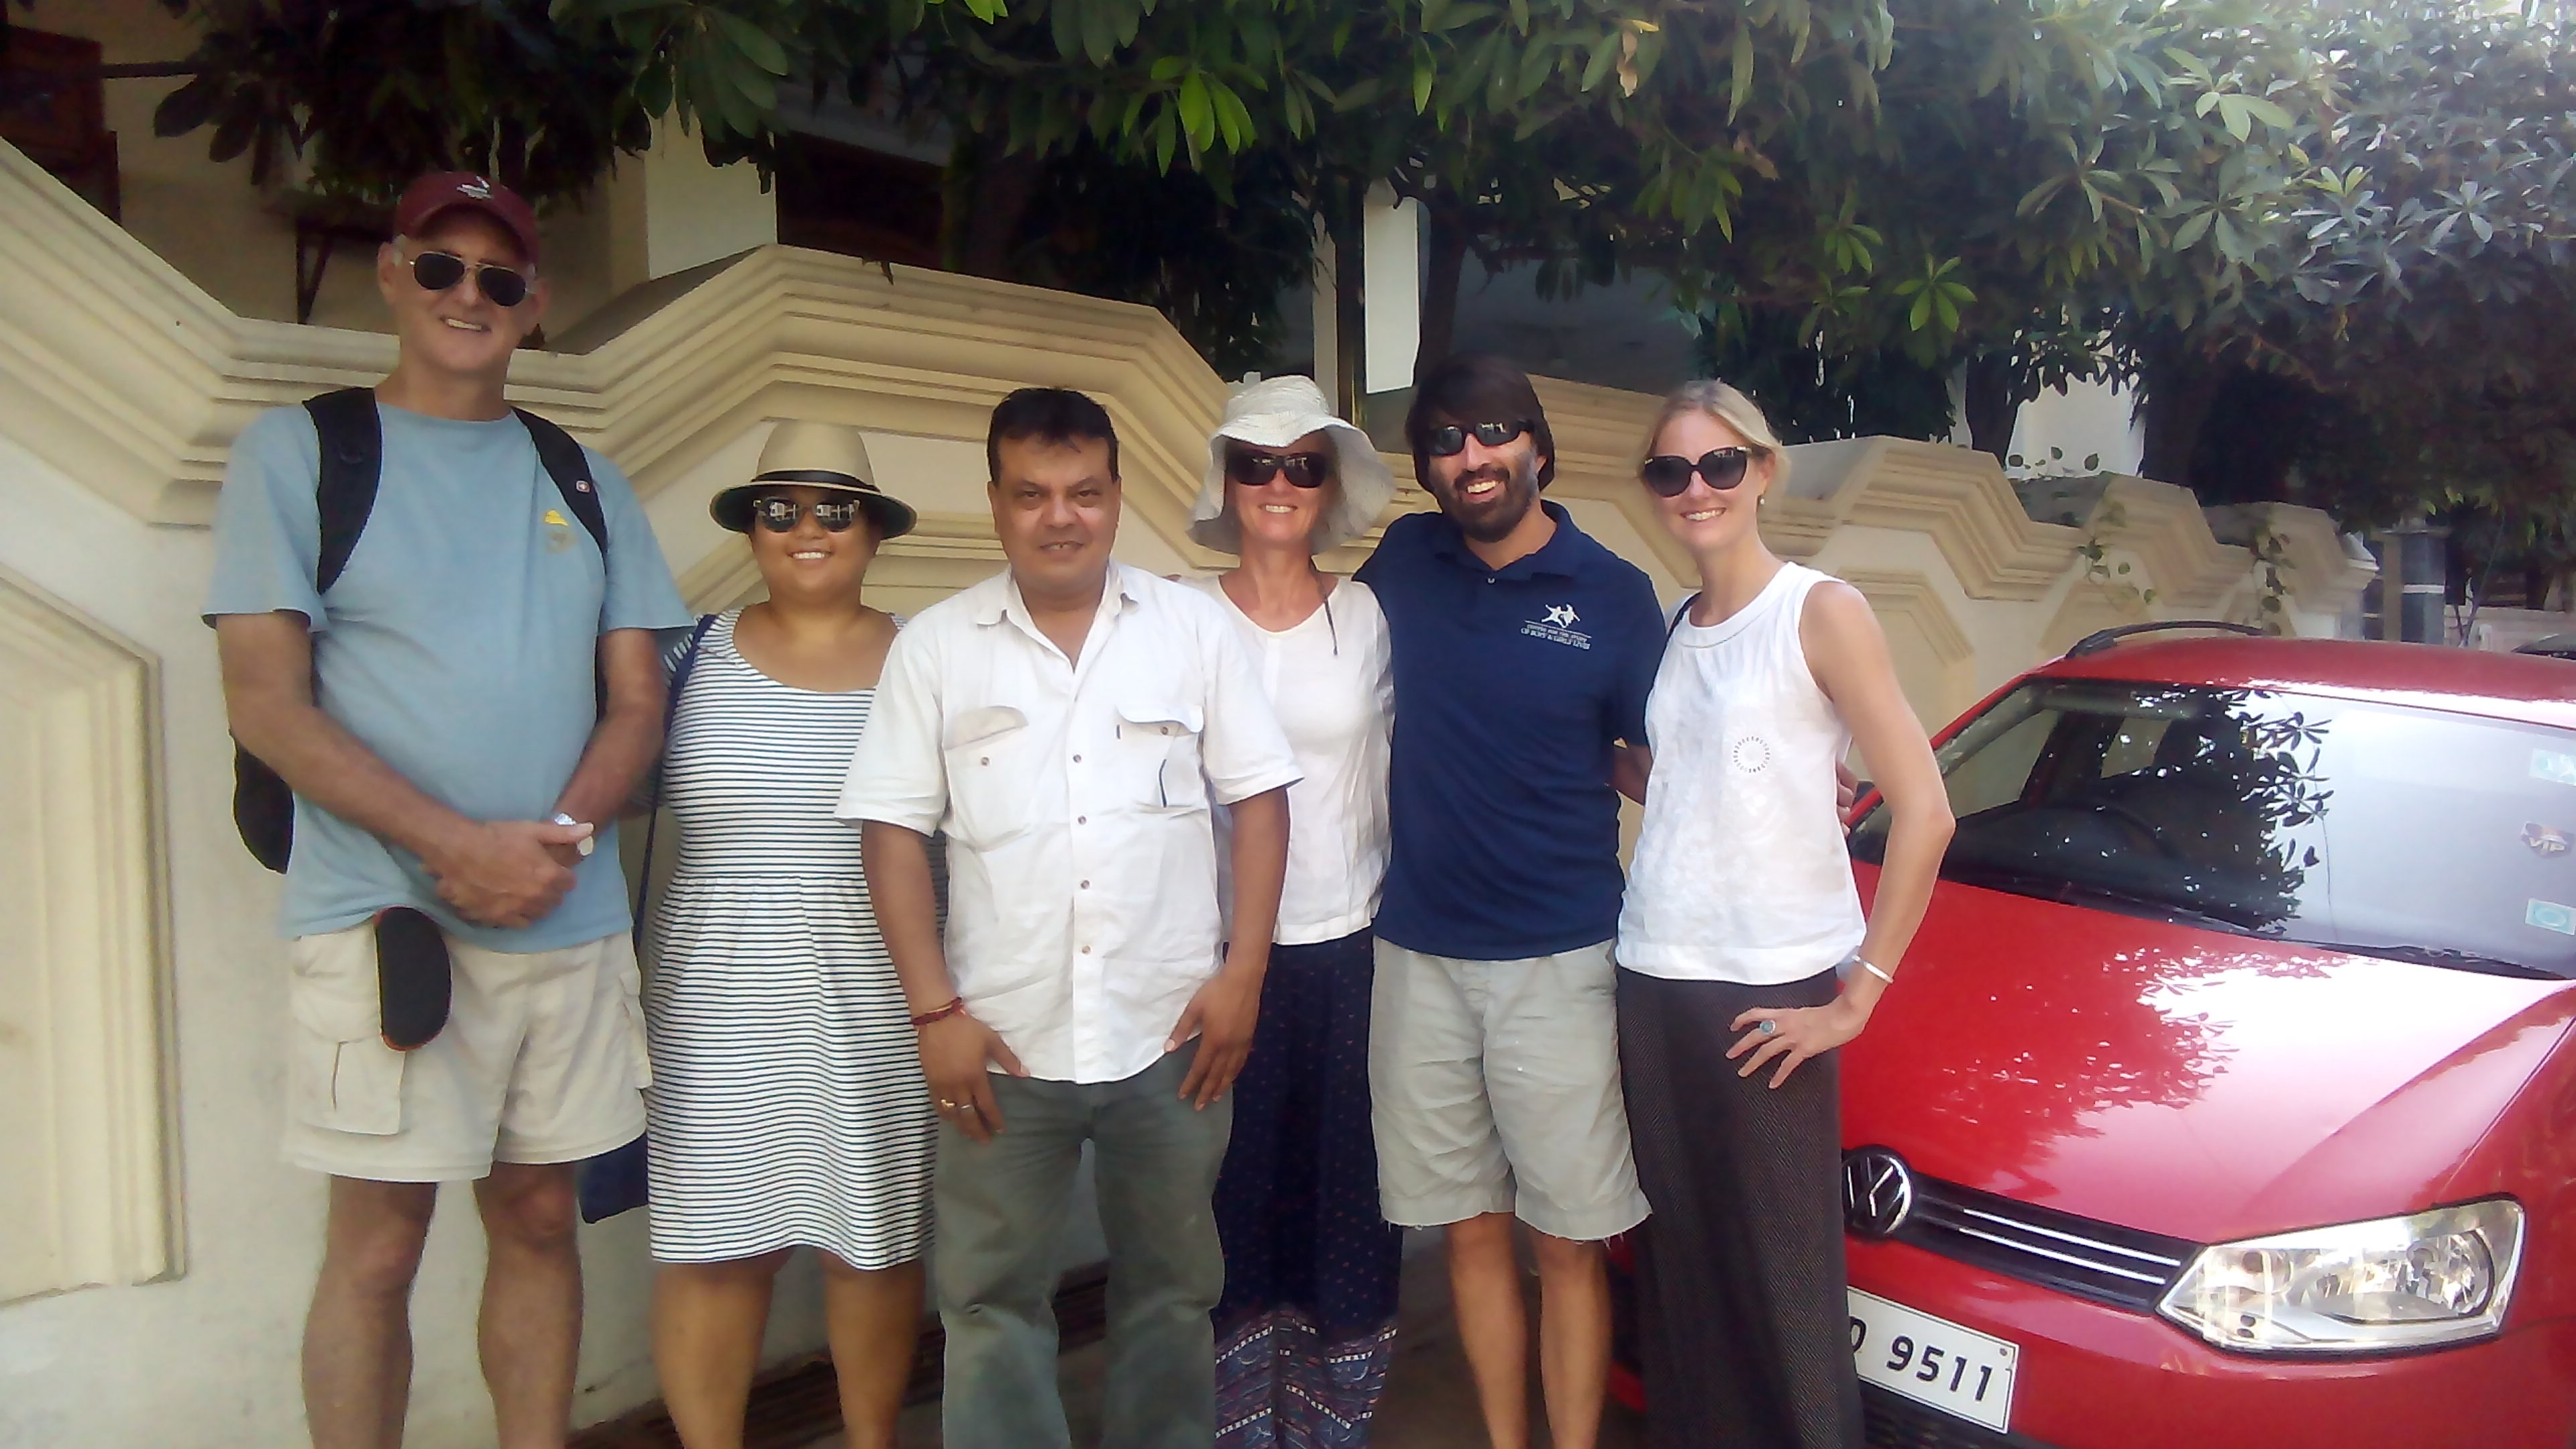 Car Rental from Delhi,Rajasthan Tour Packages from Delhi,Taj mahal tour package,India tour package from Delhi,Delhi tour and travel packages